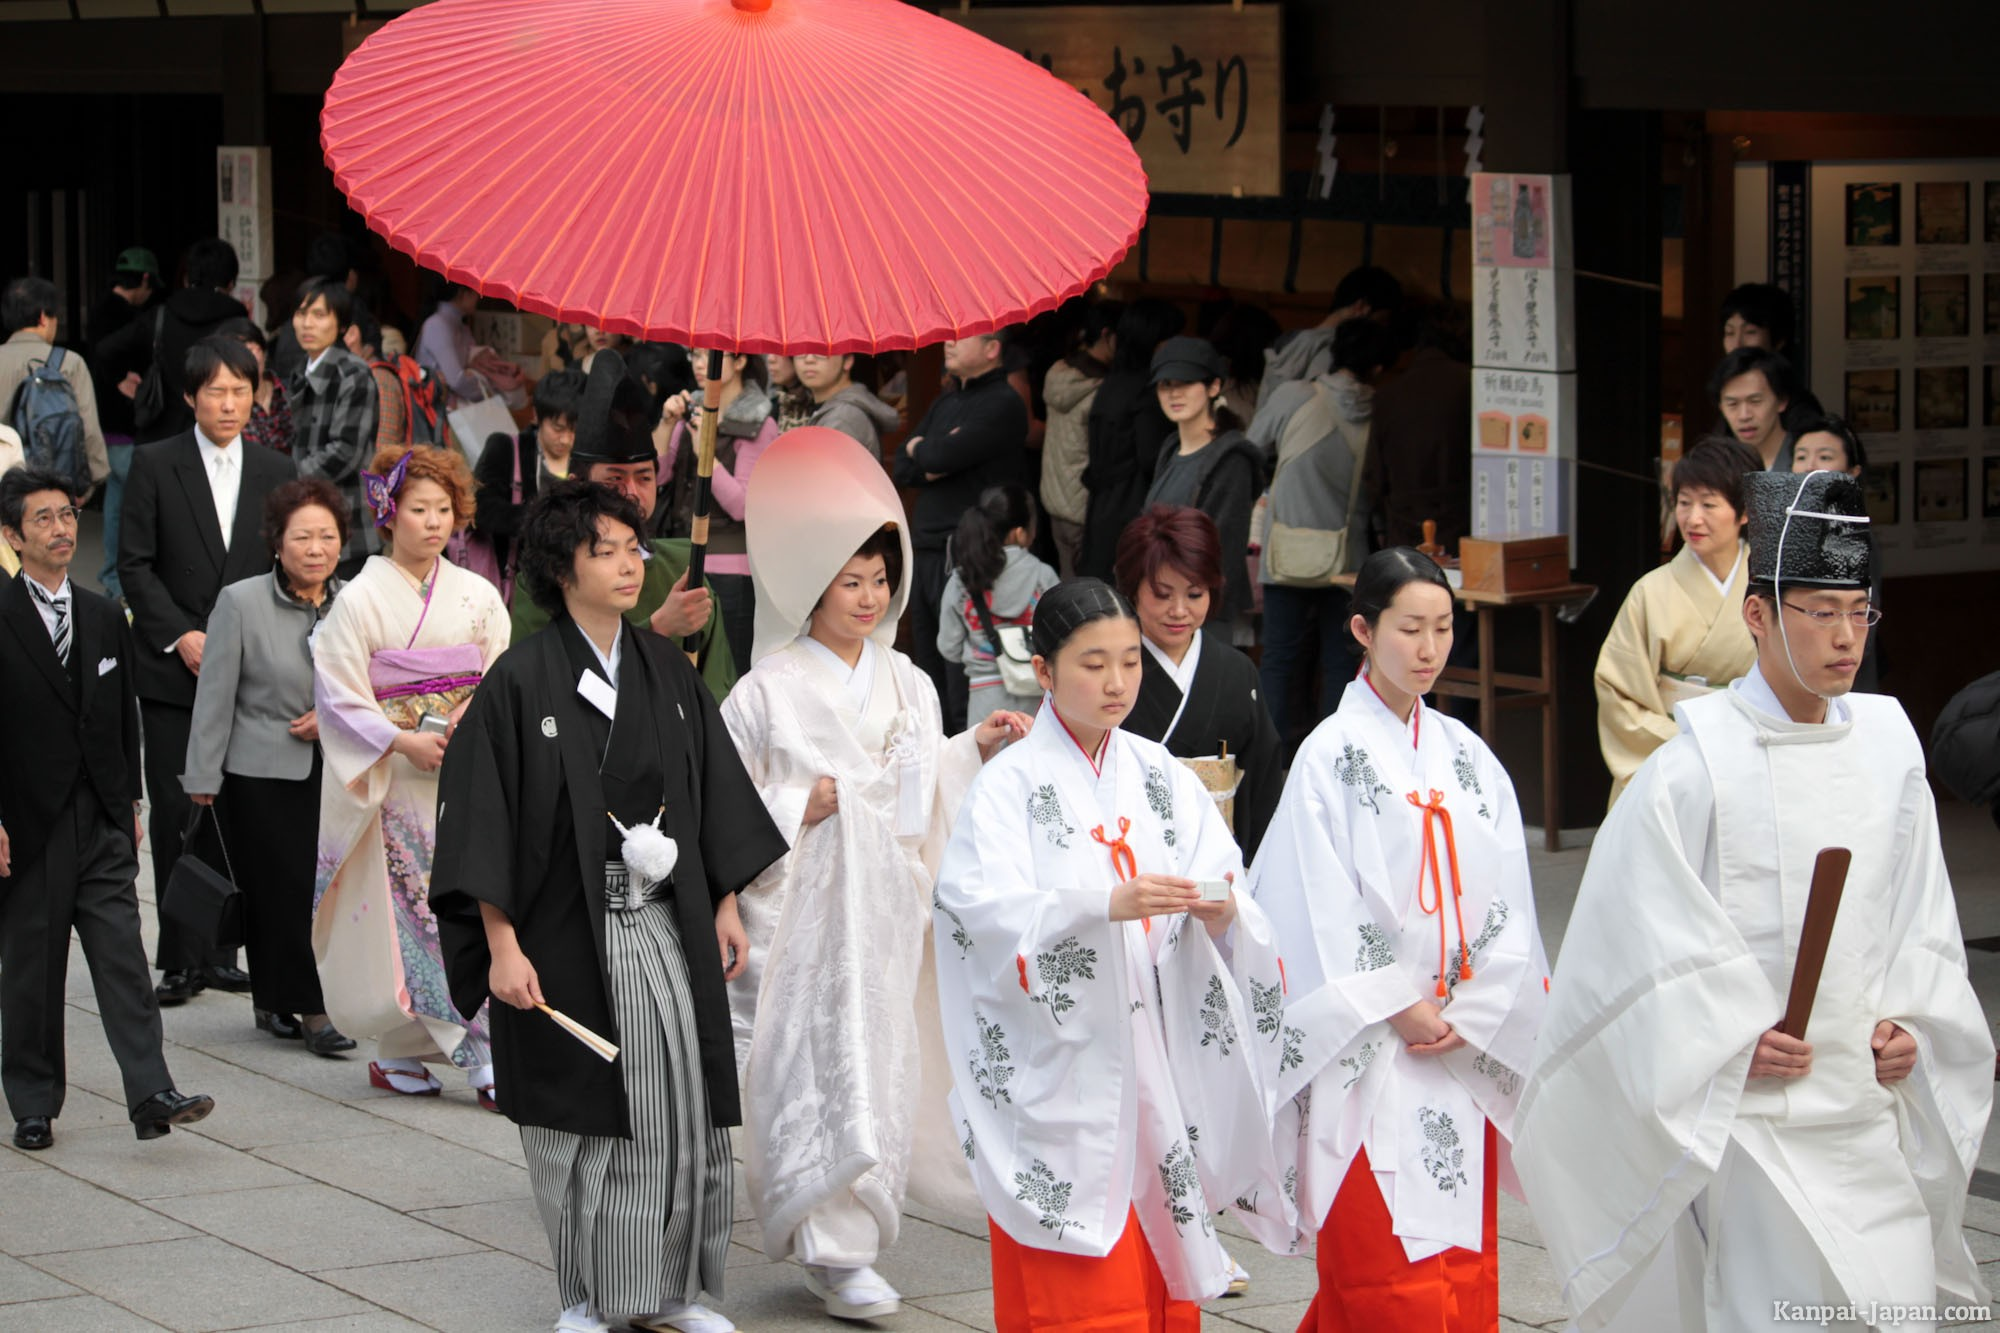 Japanese dating and marriage customs